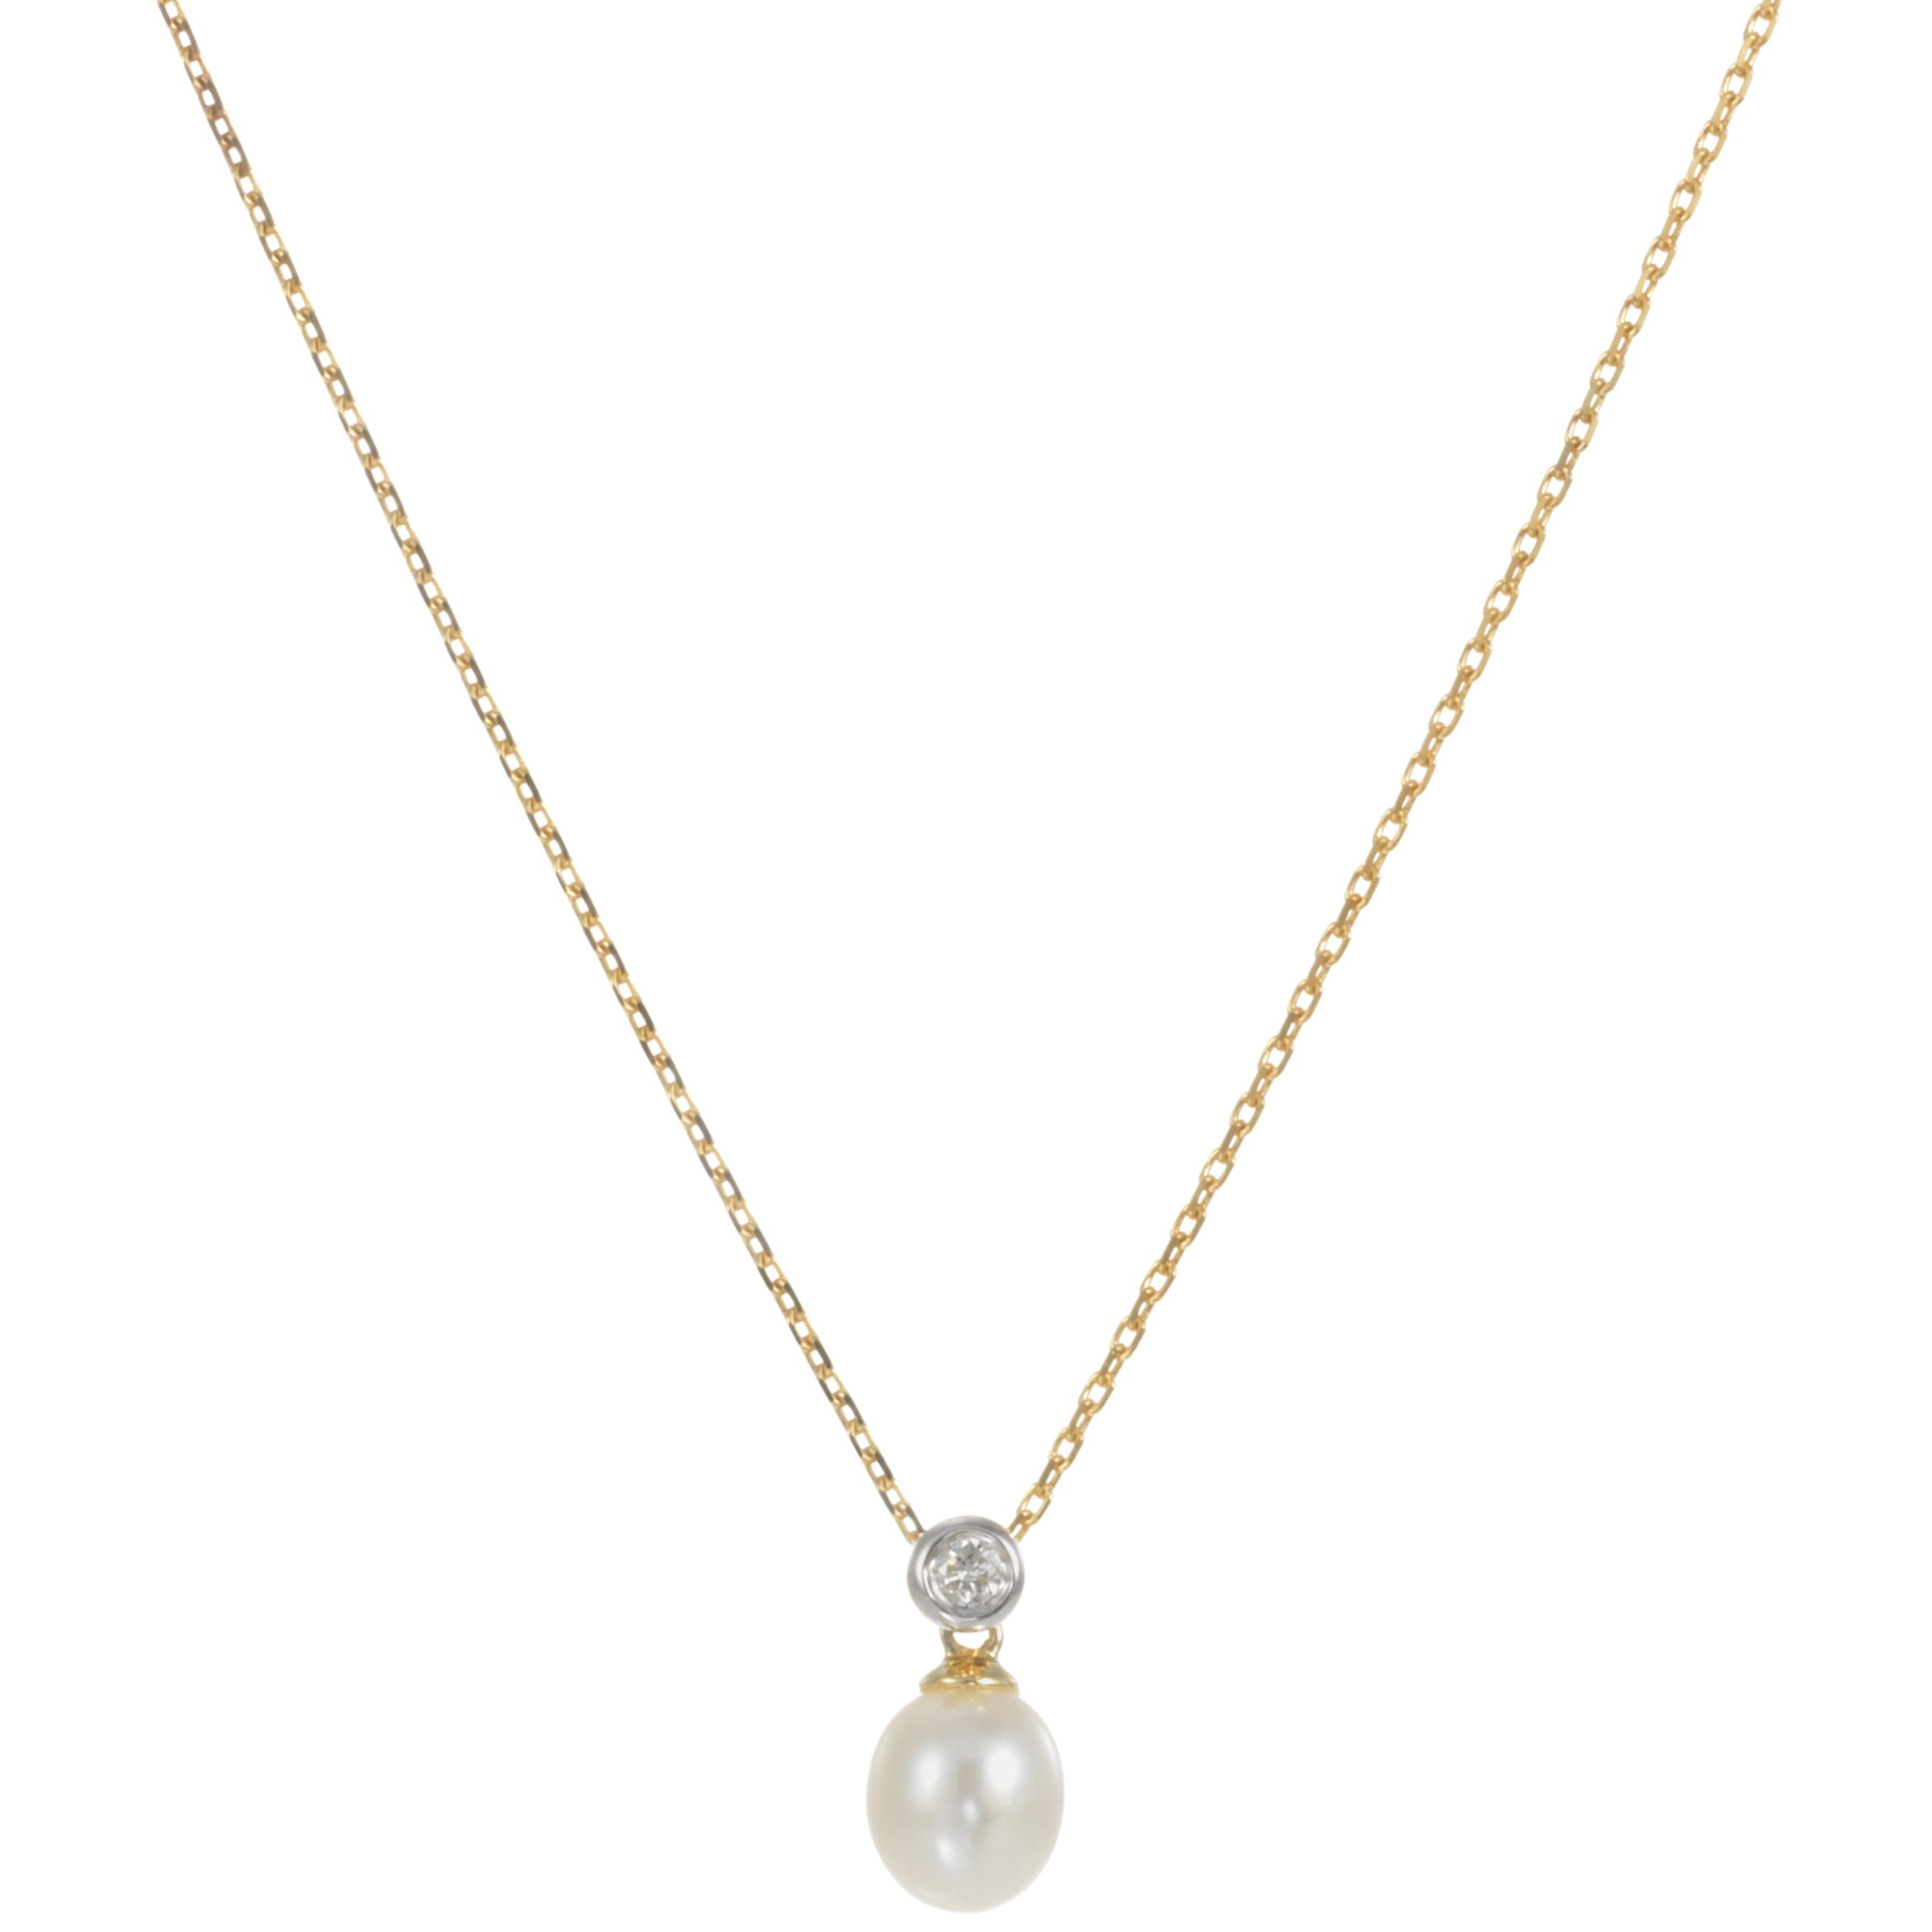 9ct Yellow Gold Diamond/Cultured White Freshwater Pearl Pendant Necklace